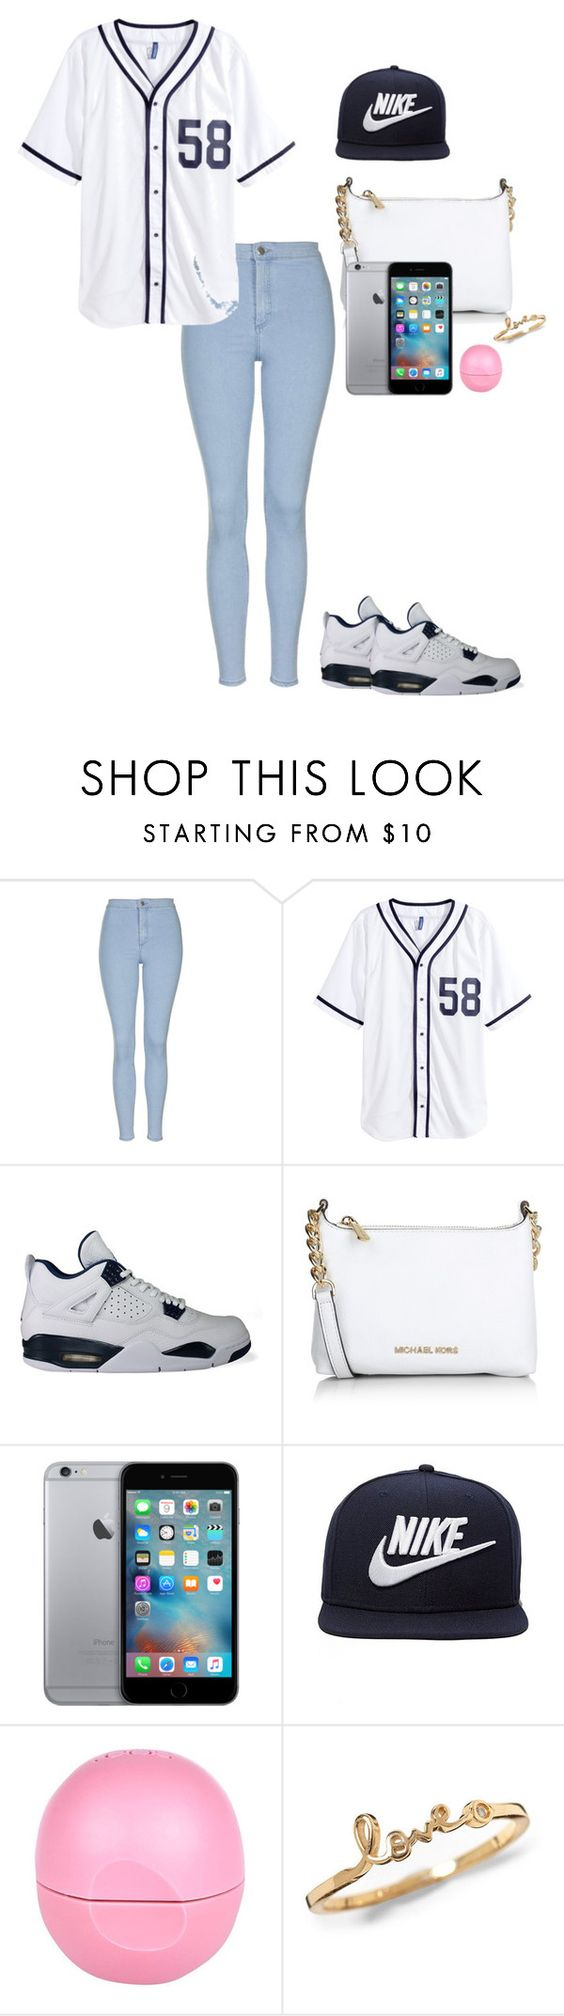 """""""heading to work"""" by laylay128 on Polyvore featuring Topshop, H&M, NIKE, Michael Kors, River Island, women's clothing, women, female, woman and misses"""